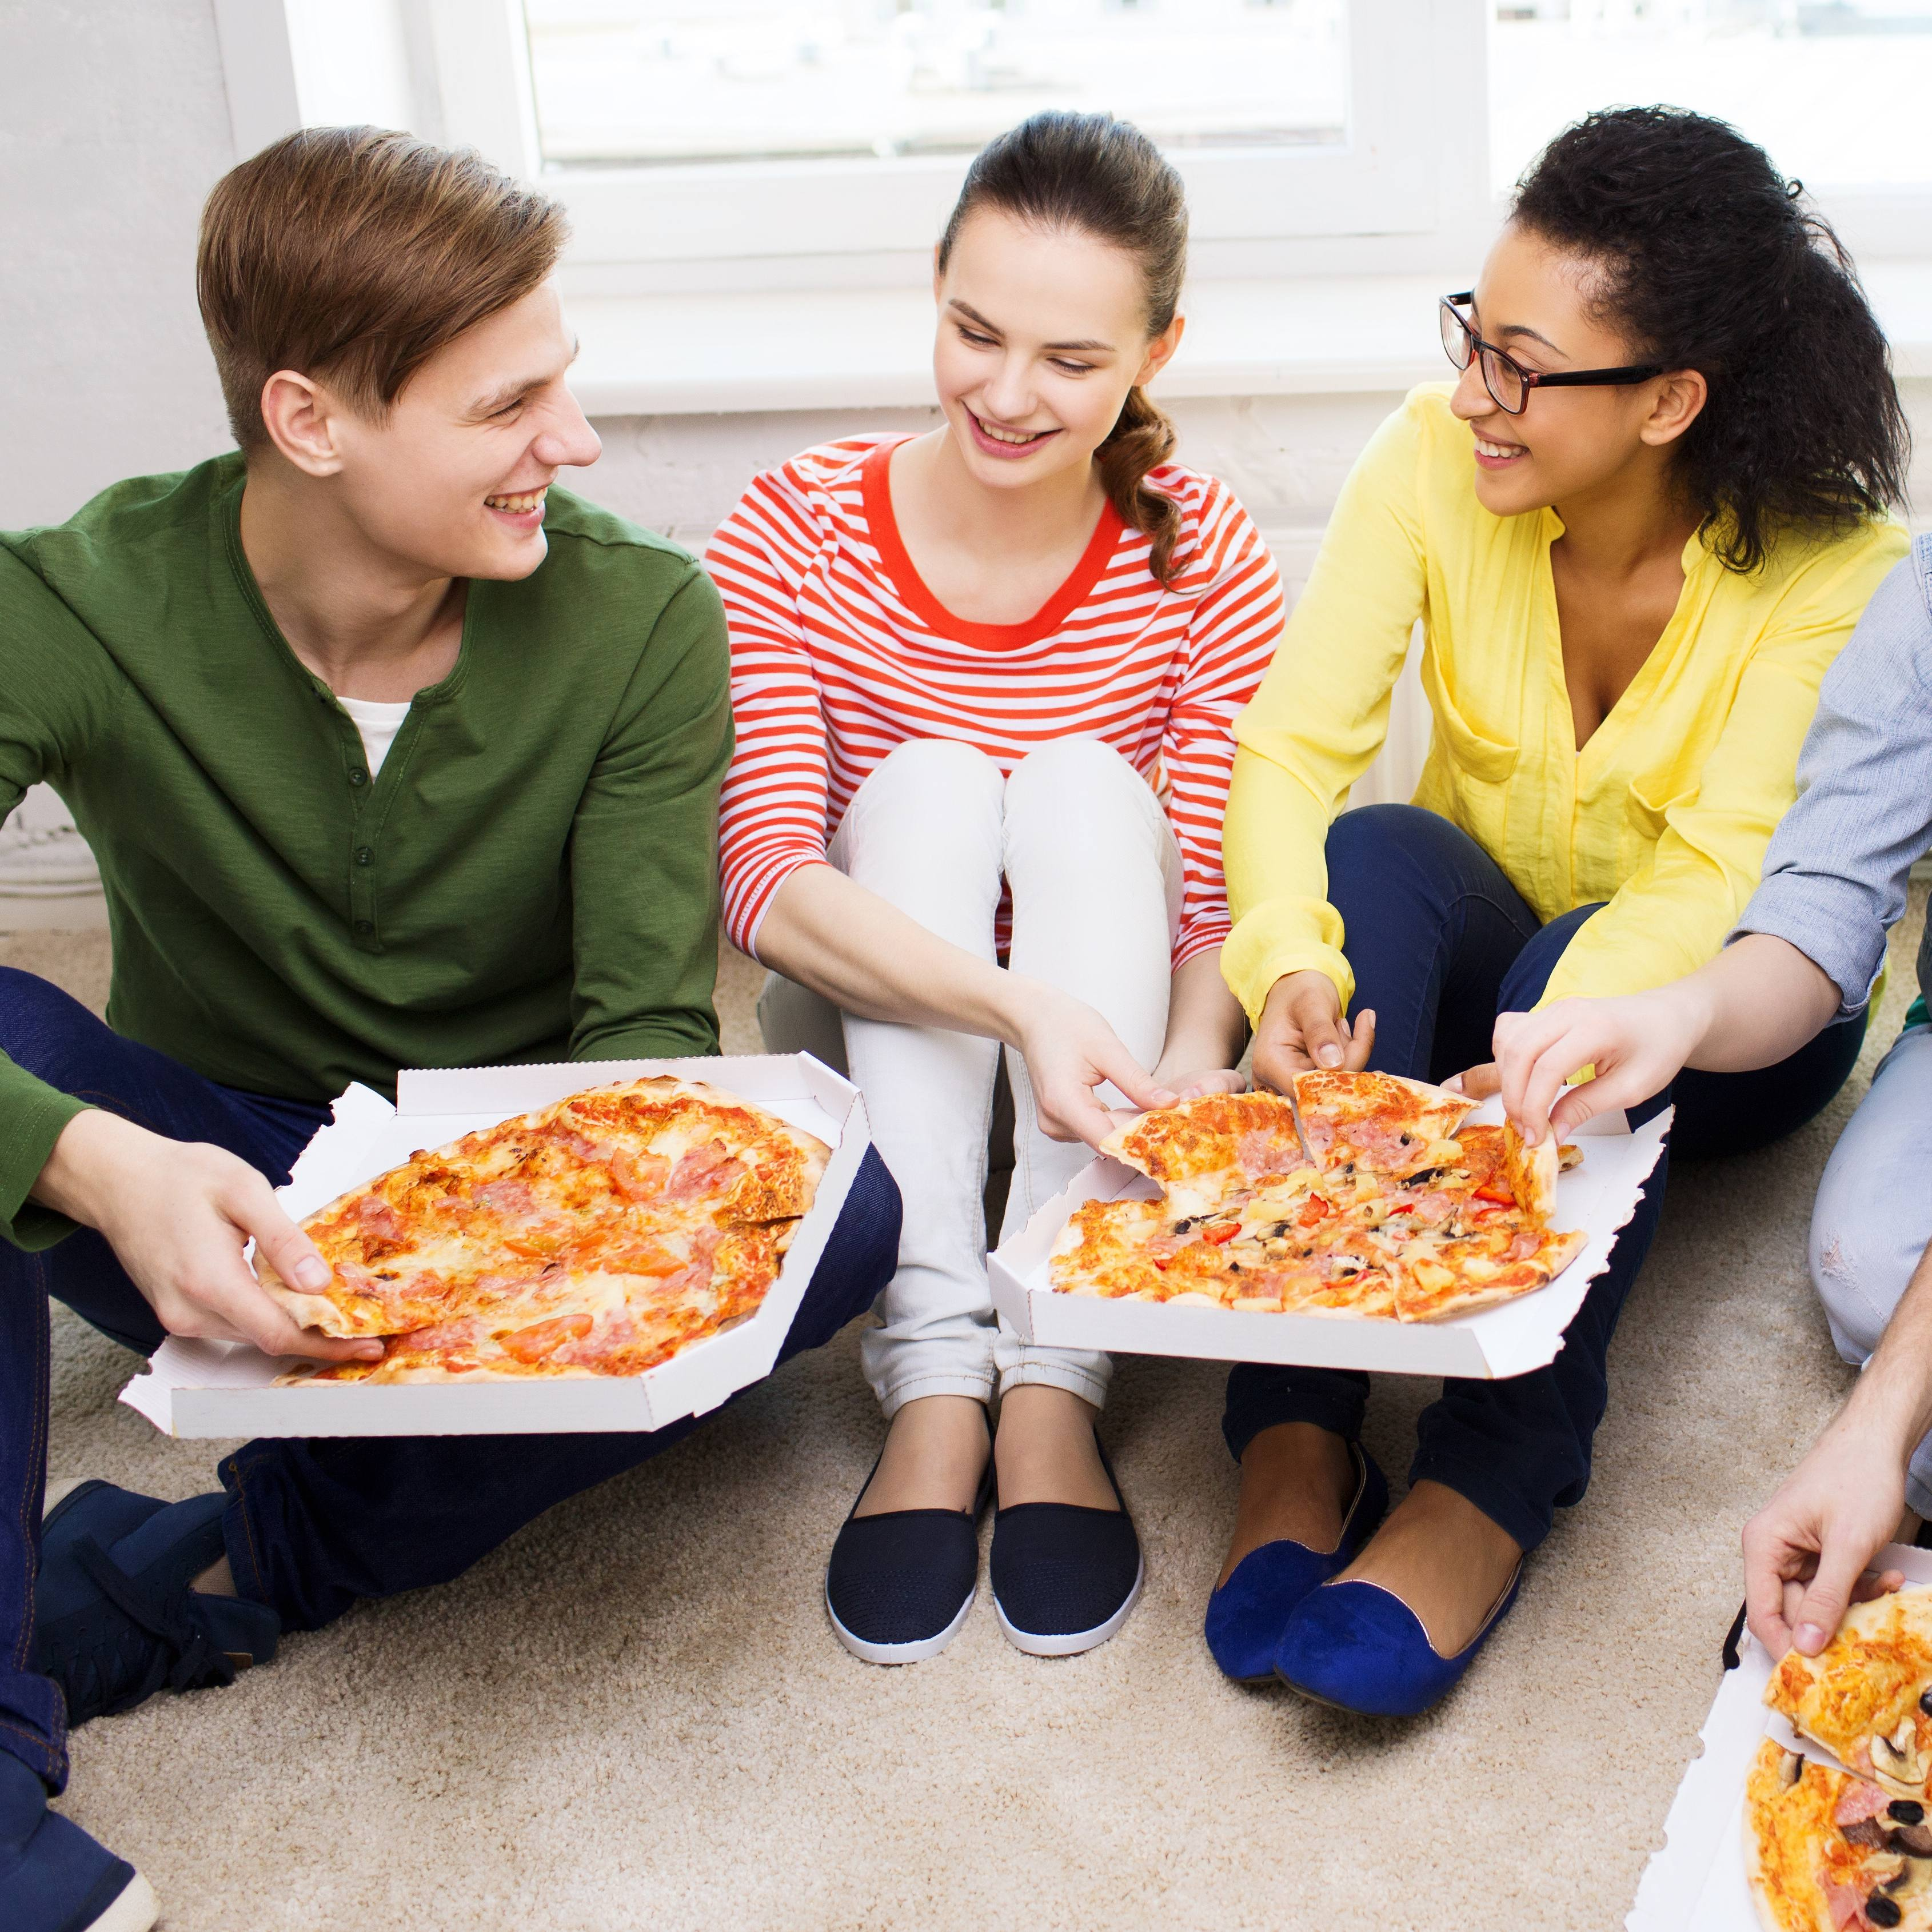 a group of friends, students, young people sitting together on perhaps a dorm room floor, laughing, smiling and eating pizza